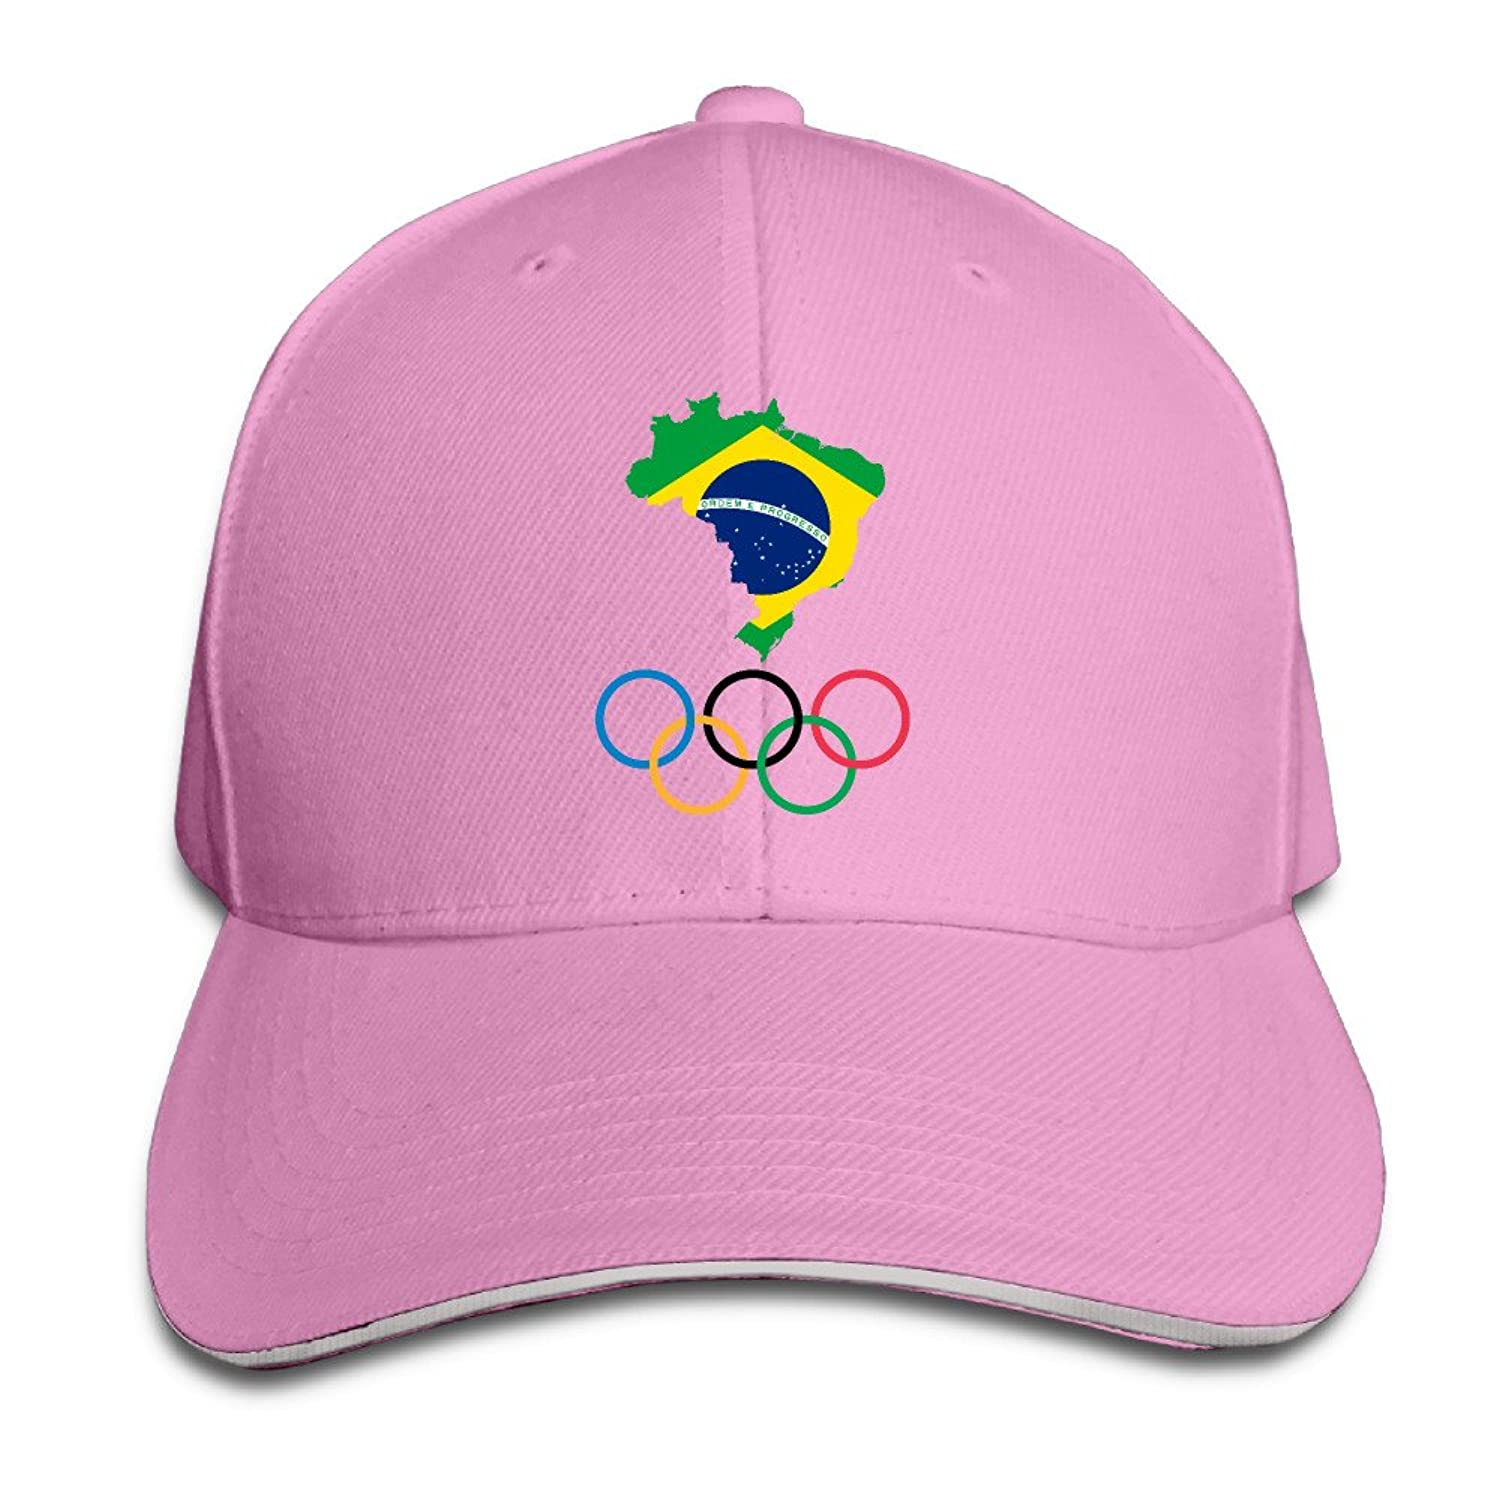 MYDT1 2016 Brazil Rio De Janeiro Olympic Games Outdoor Sandwich Peaked Caps Hats For Unisex